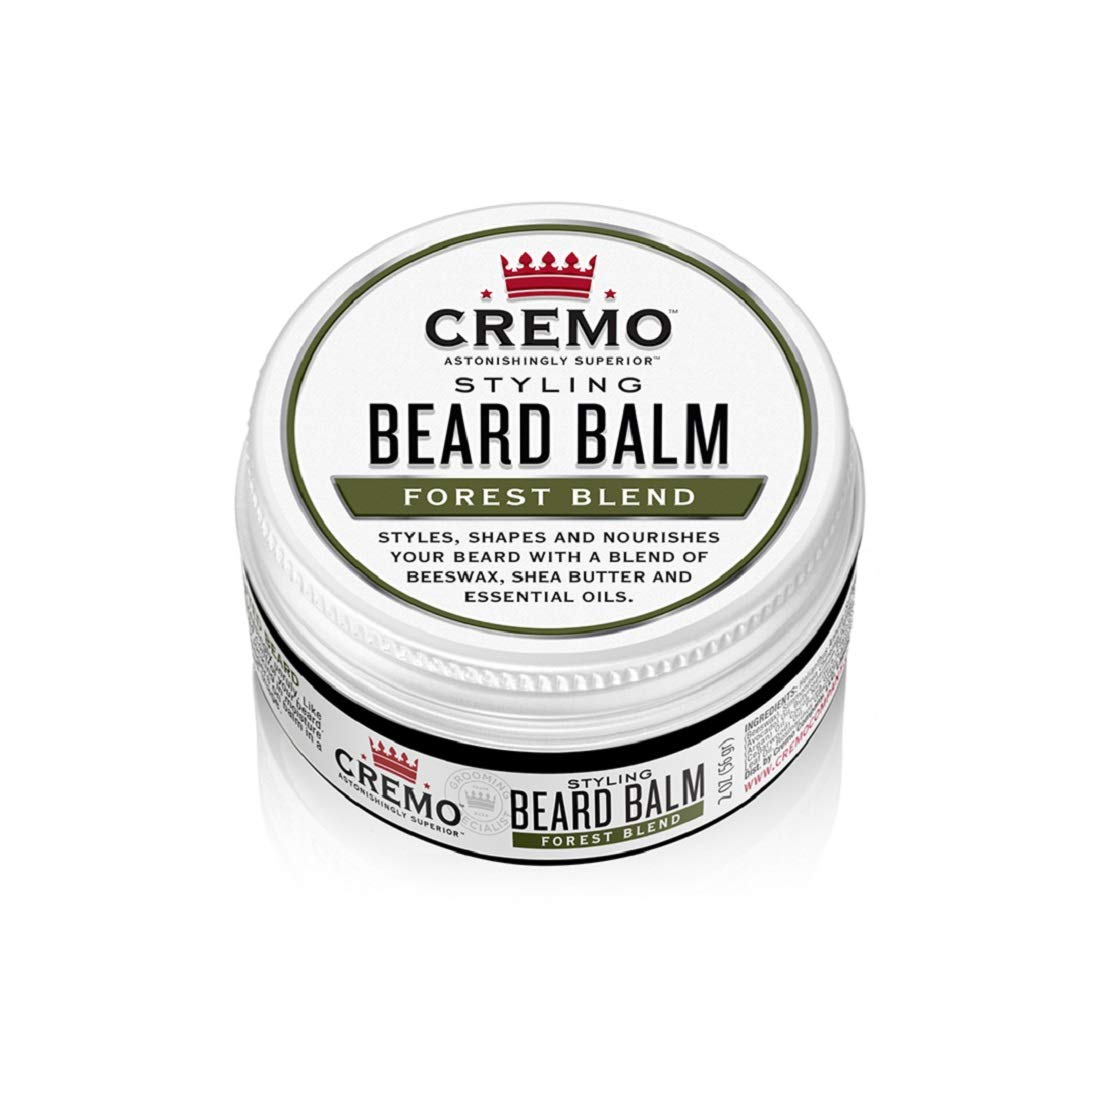 Cremo Styling Beard Balm, Forest Blend, Nourishes, Shapes And Moisturizes All Lengths Of Facial Hair, Woodsy Forest 2 Ounce